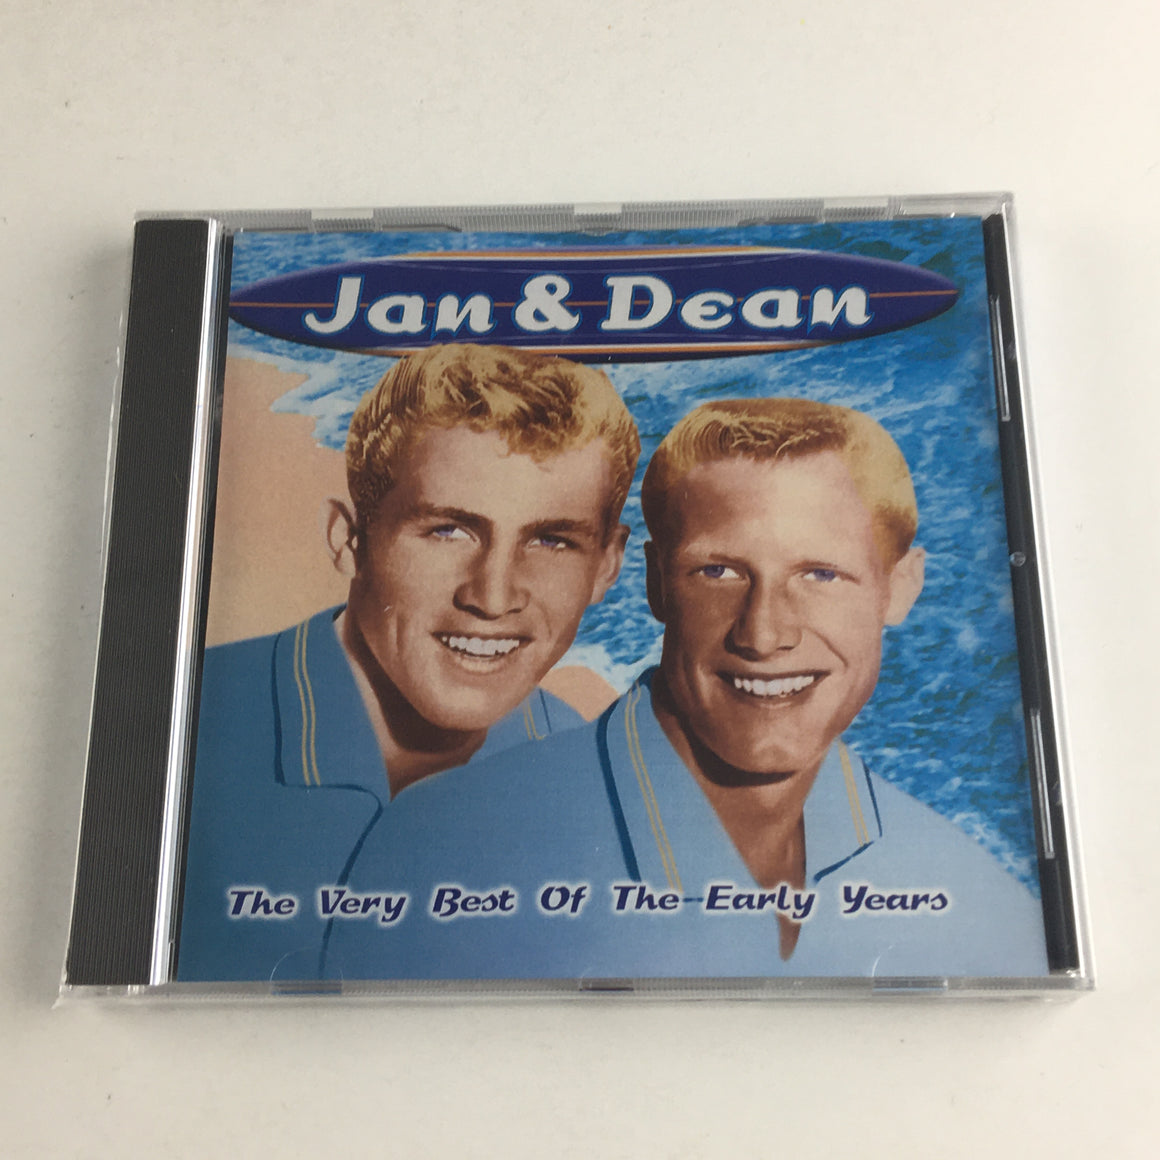 Jan & Dean The Very Best Of The Early Years New Sealed CD M COL-CD-6850